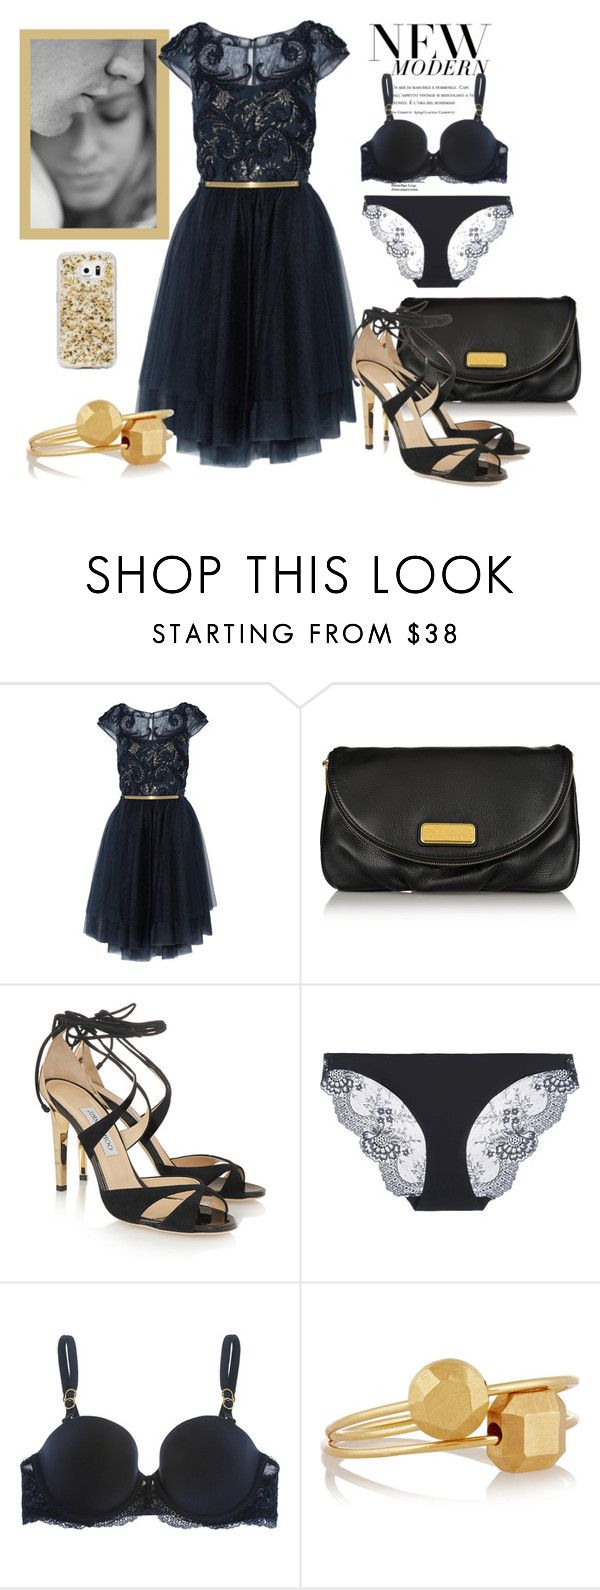 """""""Indigo party"""" by surfergirl3915-1 ❤ liked on Polyvore featuring Notte by Marchesa, Marc by Marc Jacobs, Jimmy Choo, STELLA McCARTNEY and IaM by Ileana Makri"""